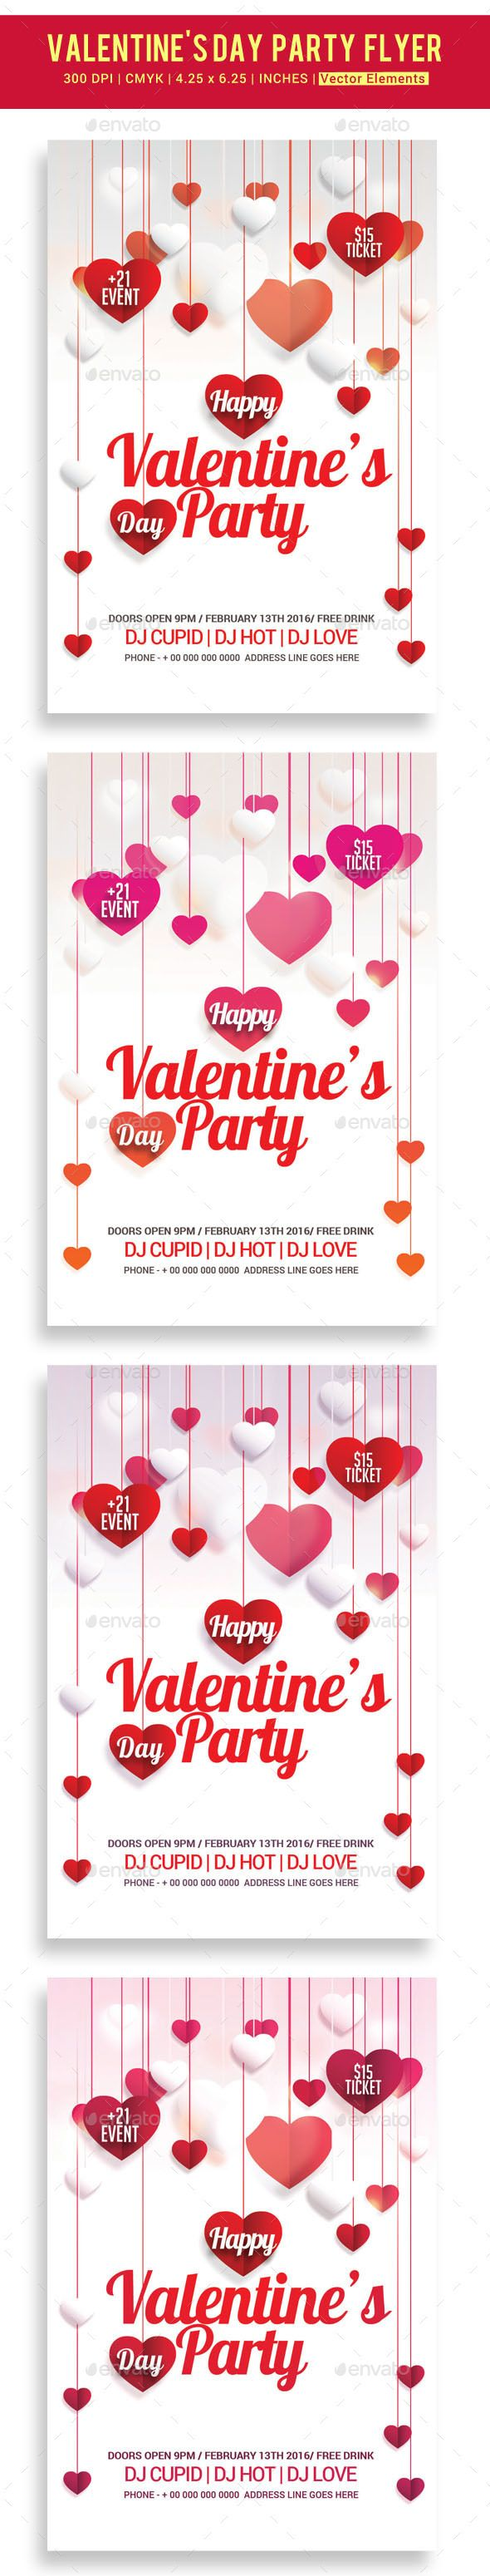 valentine s party dinner flyer valentines flyer template and design valentine s day party flyer template